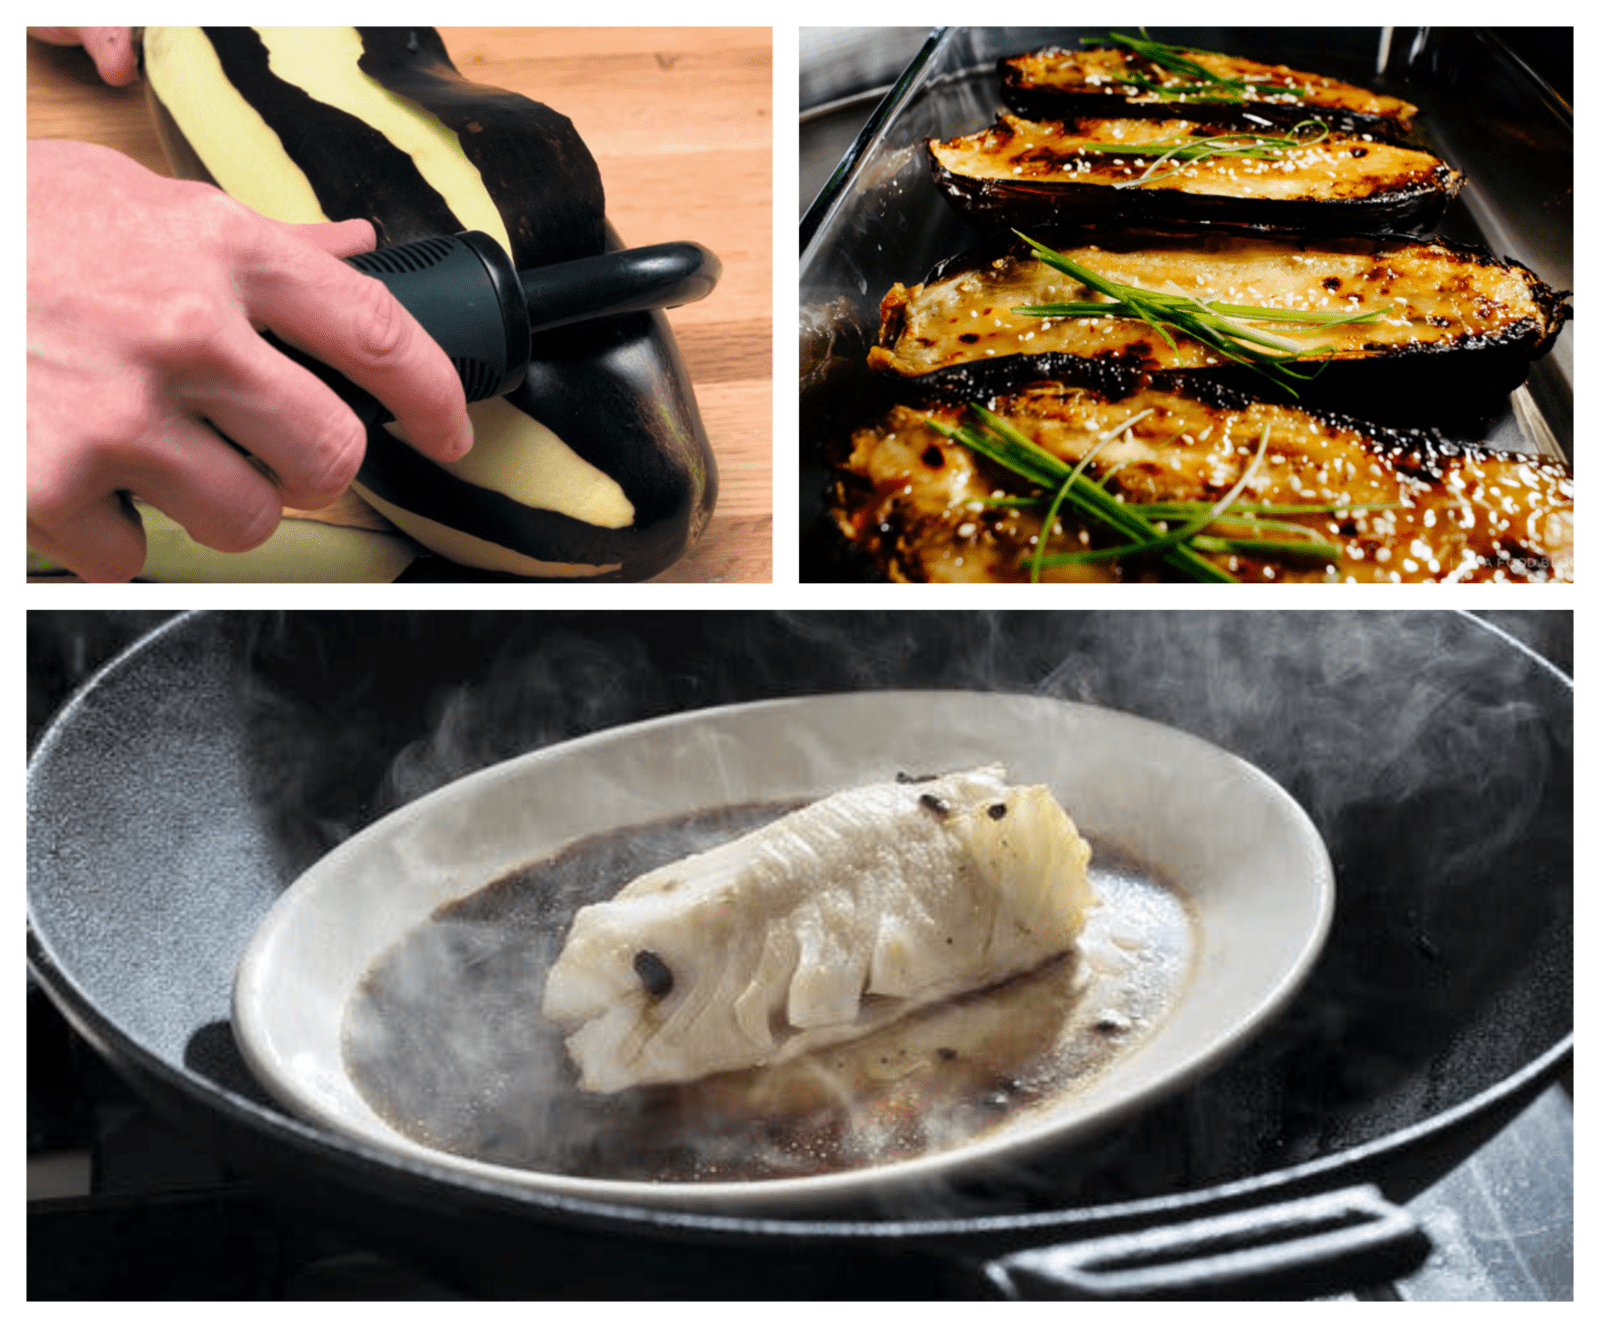 baking eggplants and steaming fish